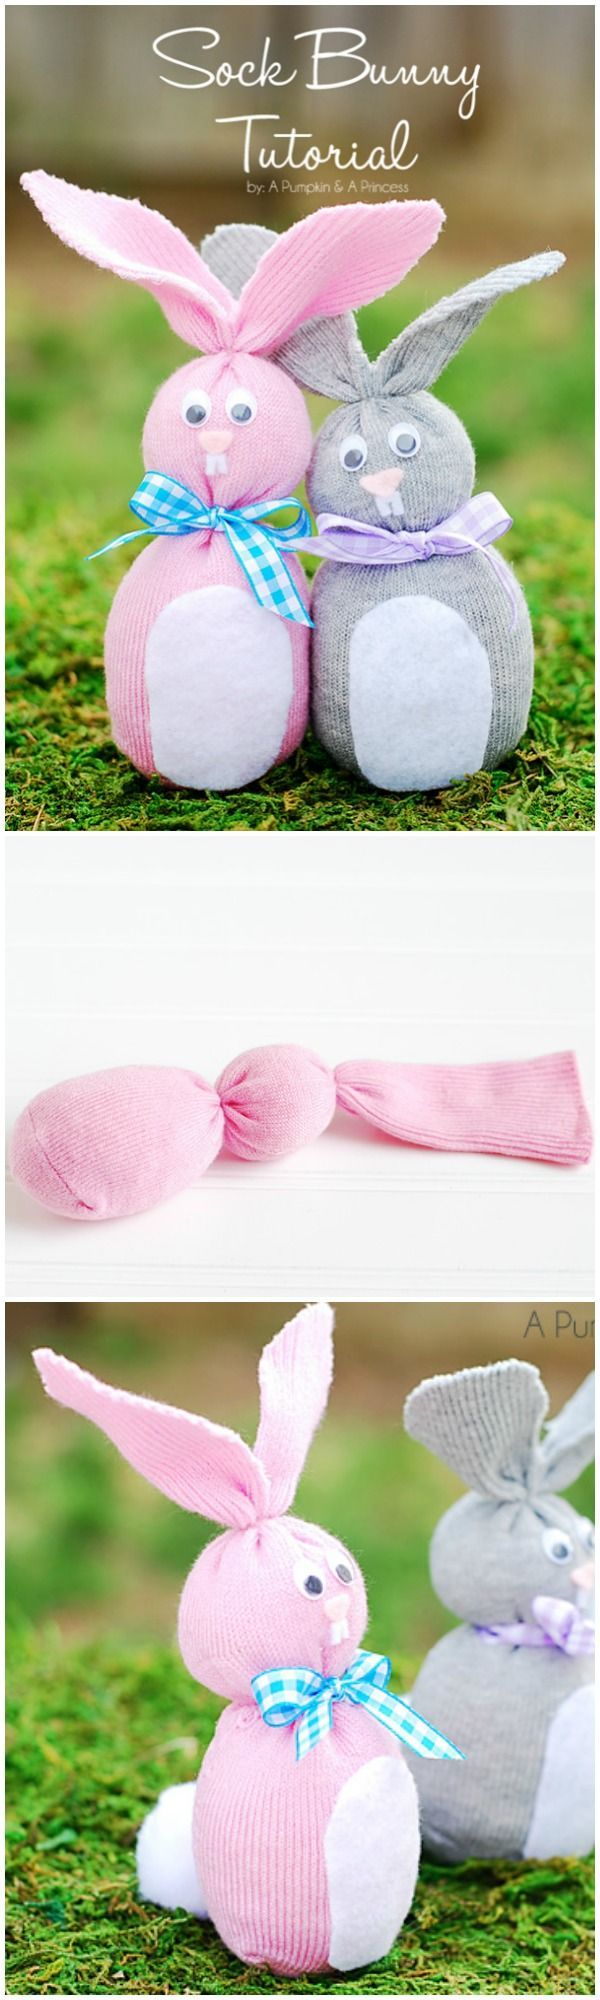 284 best easter crafts diy images on pinterest decorating diy sock bunny tutorial how to make sock bunnies out of baby socks easy easter craft idea for kids my crafts your crafts negle Choice Image